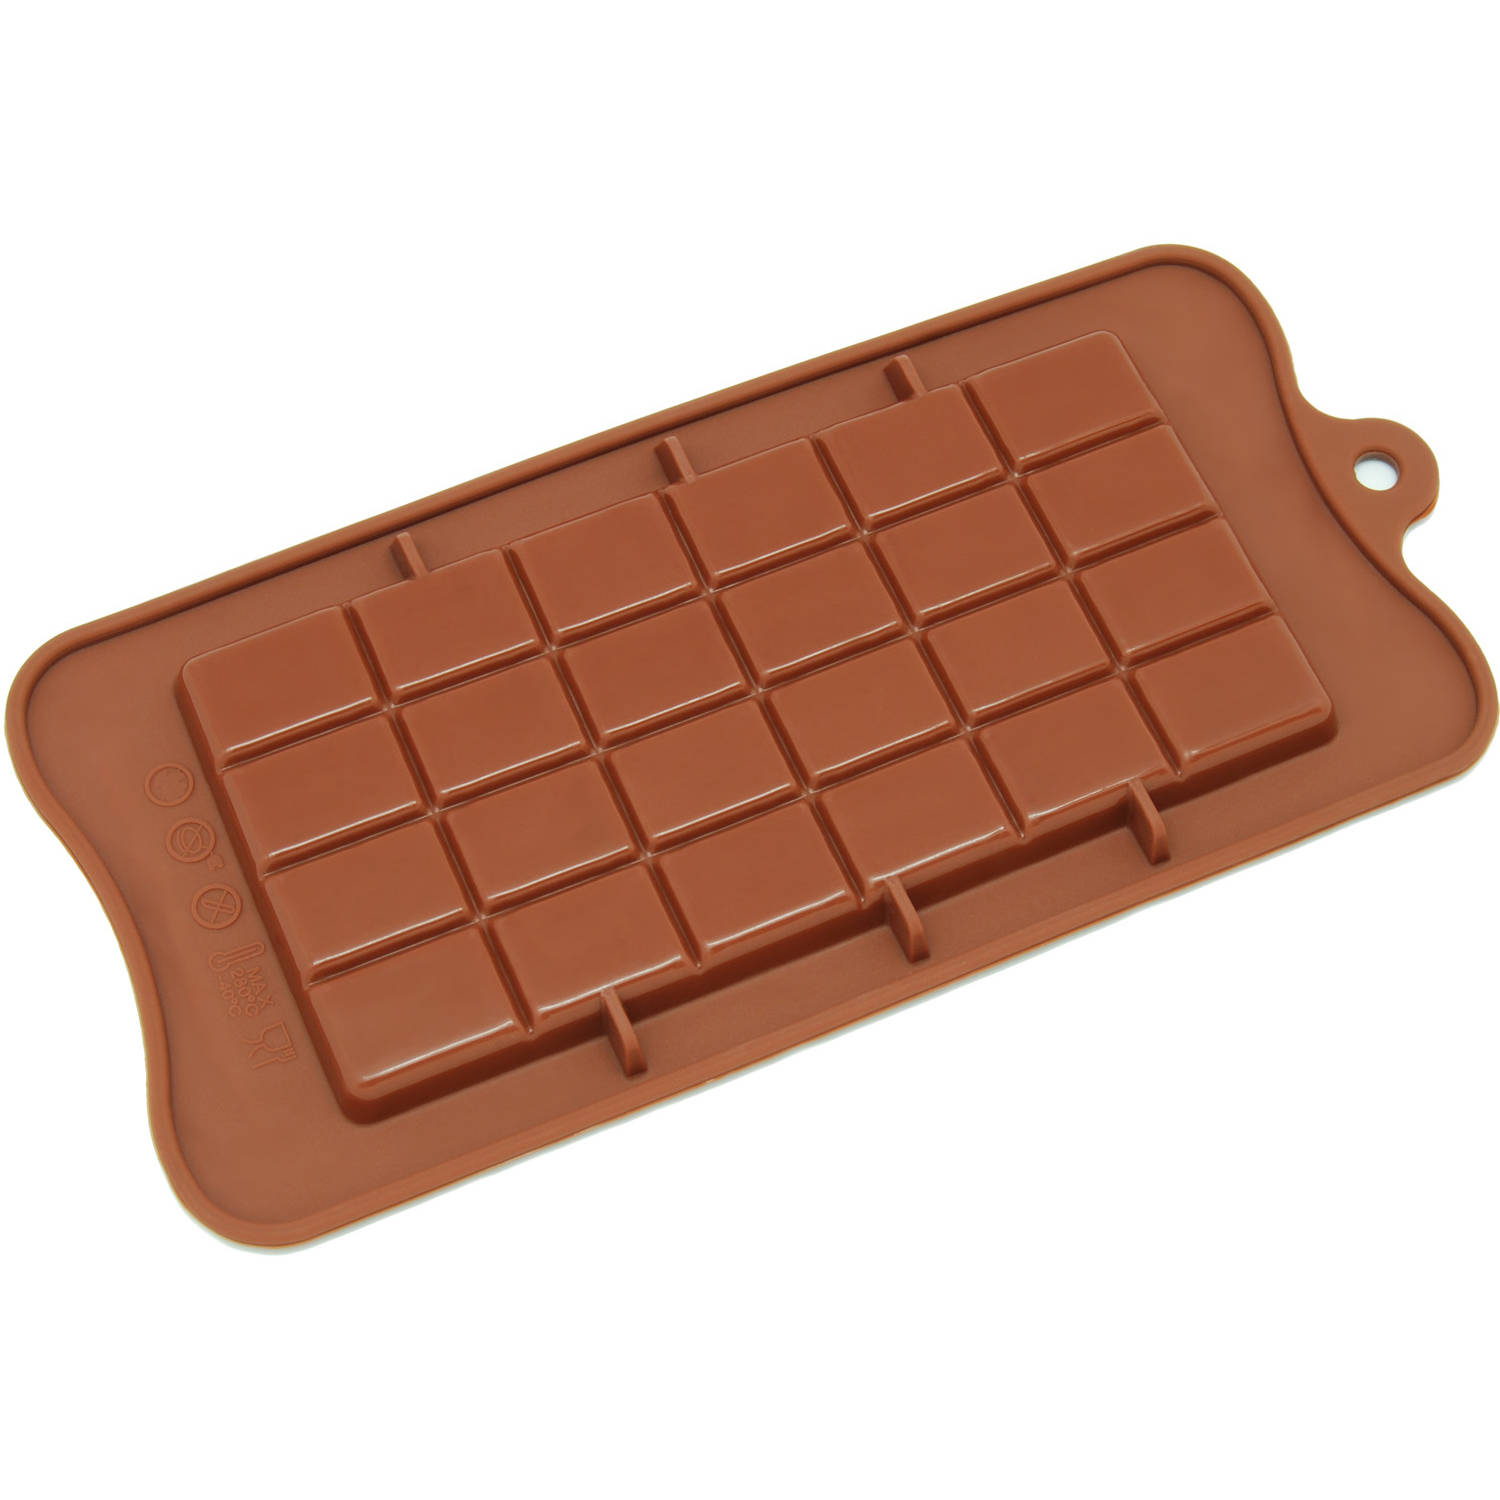 Freshware Break-Apart Chocolate, Protein and Energy Bar Silicone Mold, CB-607BR by Freshware